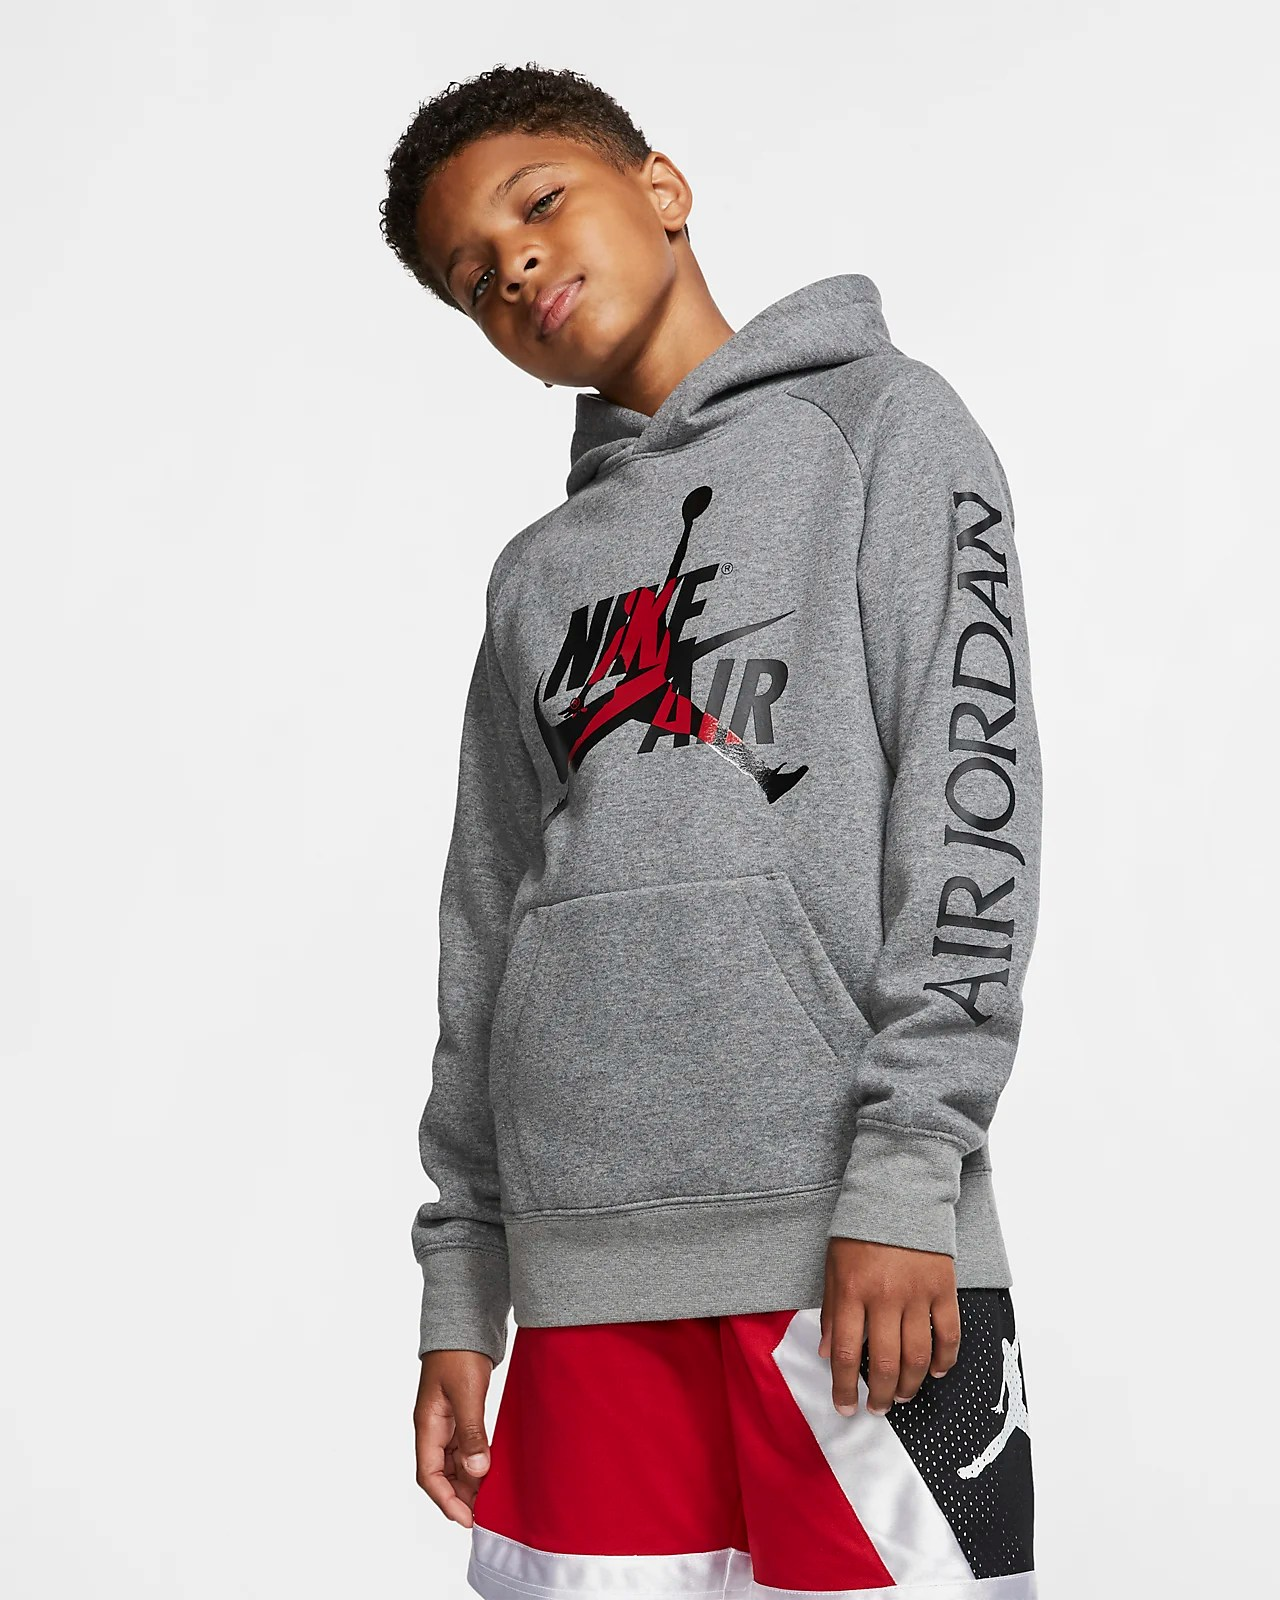 Nike Hoodie Carbon Heather Jordan Jumpman Older Kids Boys Fleece Pullover Hoodie